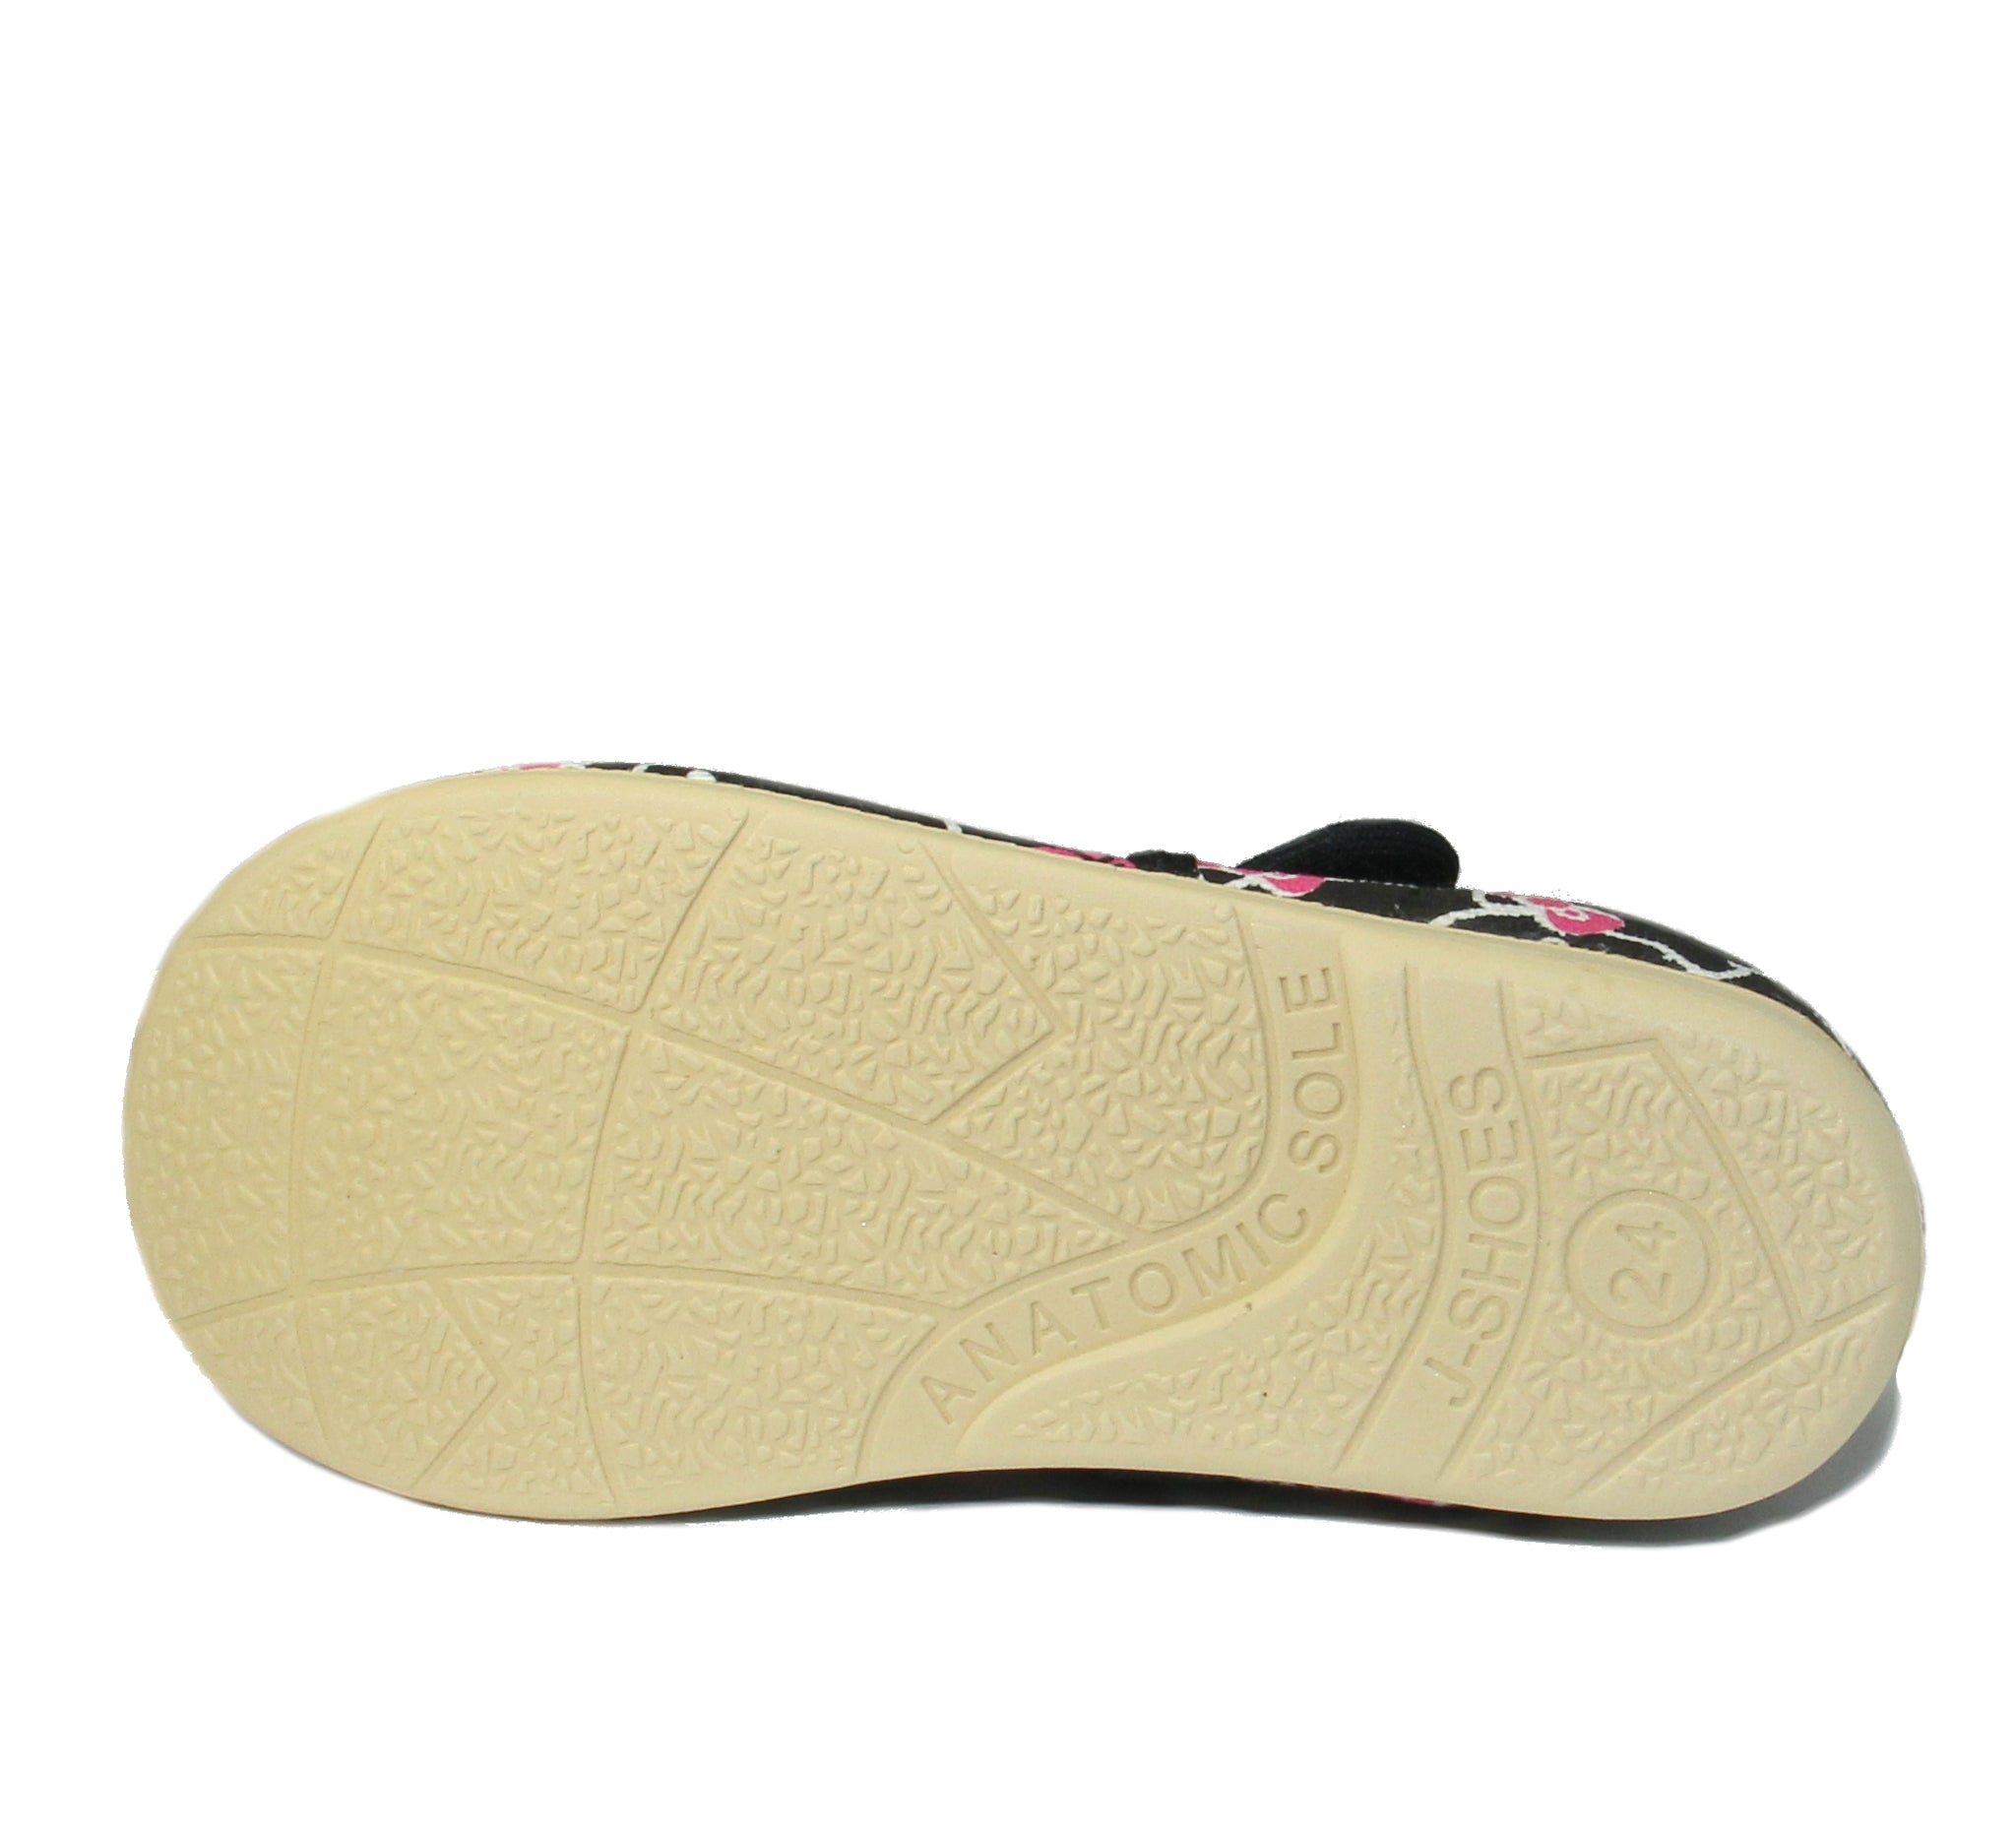 6392eb28045 ... Toddler Girls Pure Cotton Orthopedic Hello Kitty Design Slippers - Just  Be Special